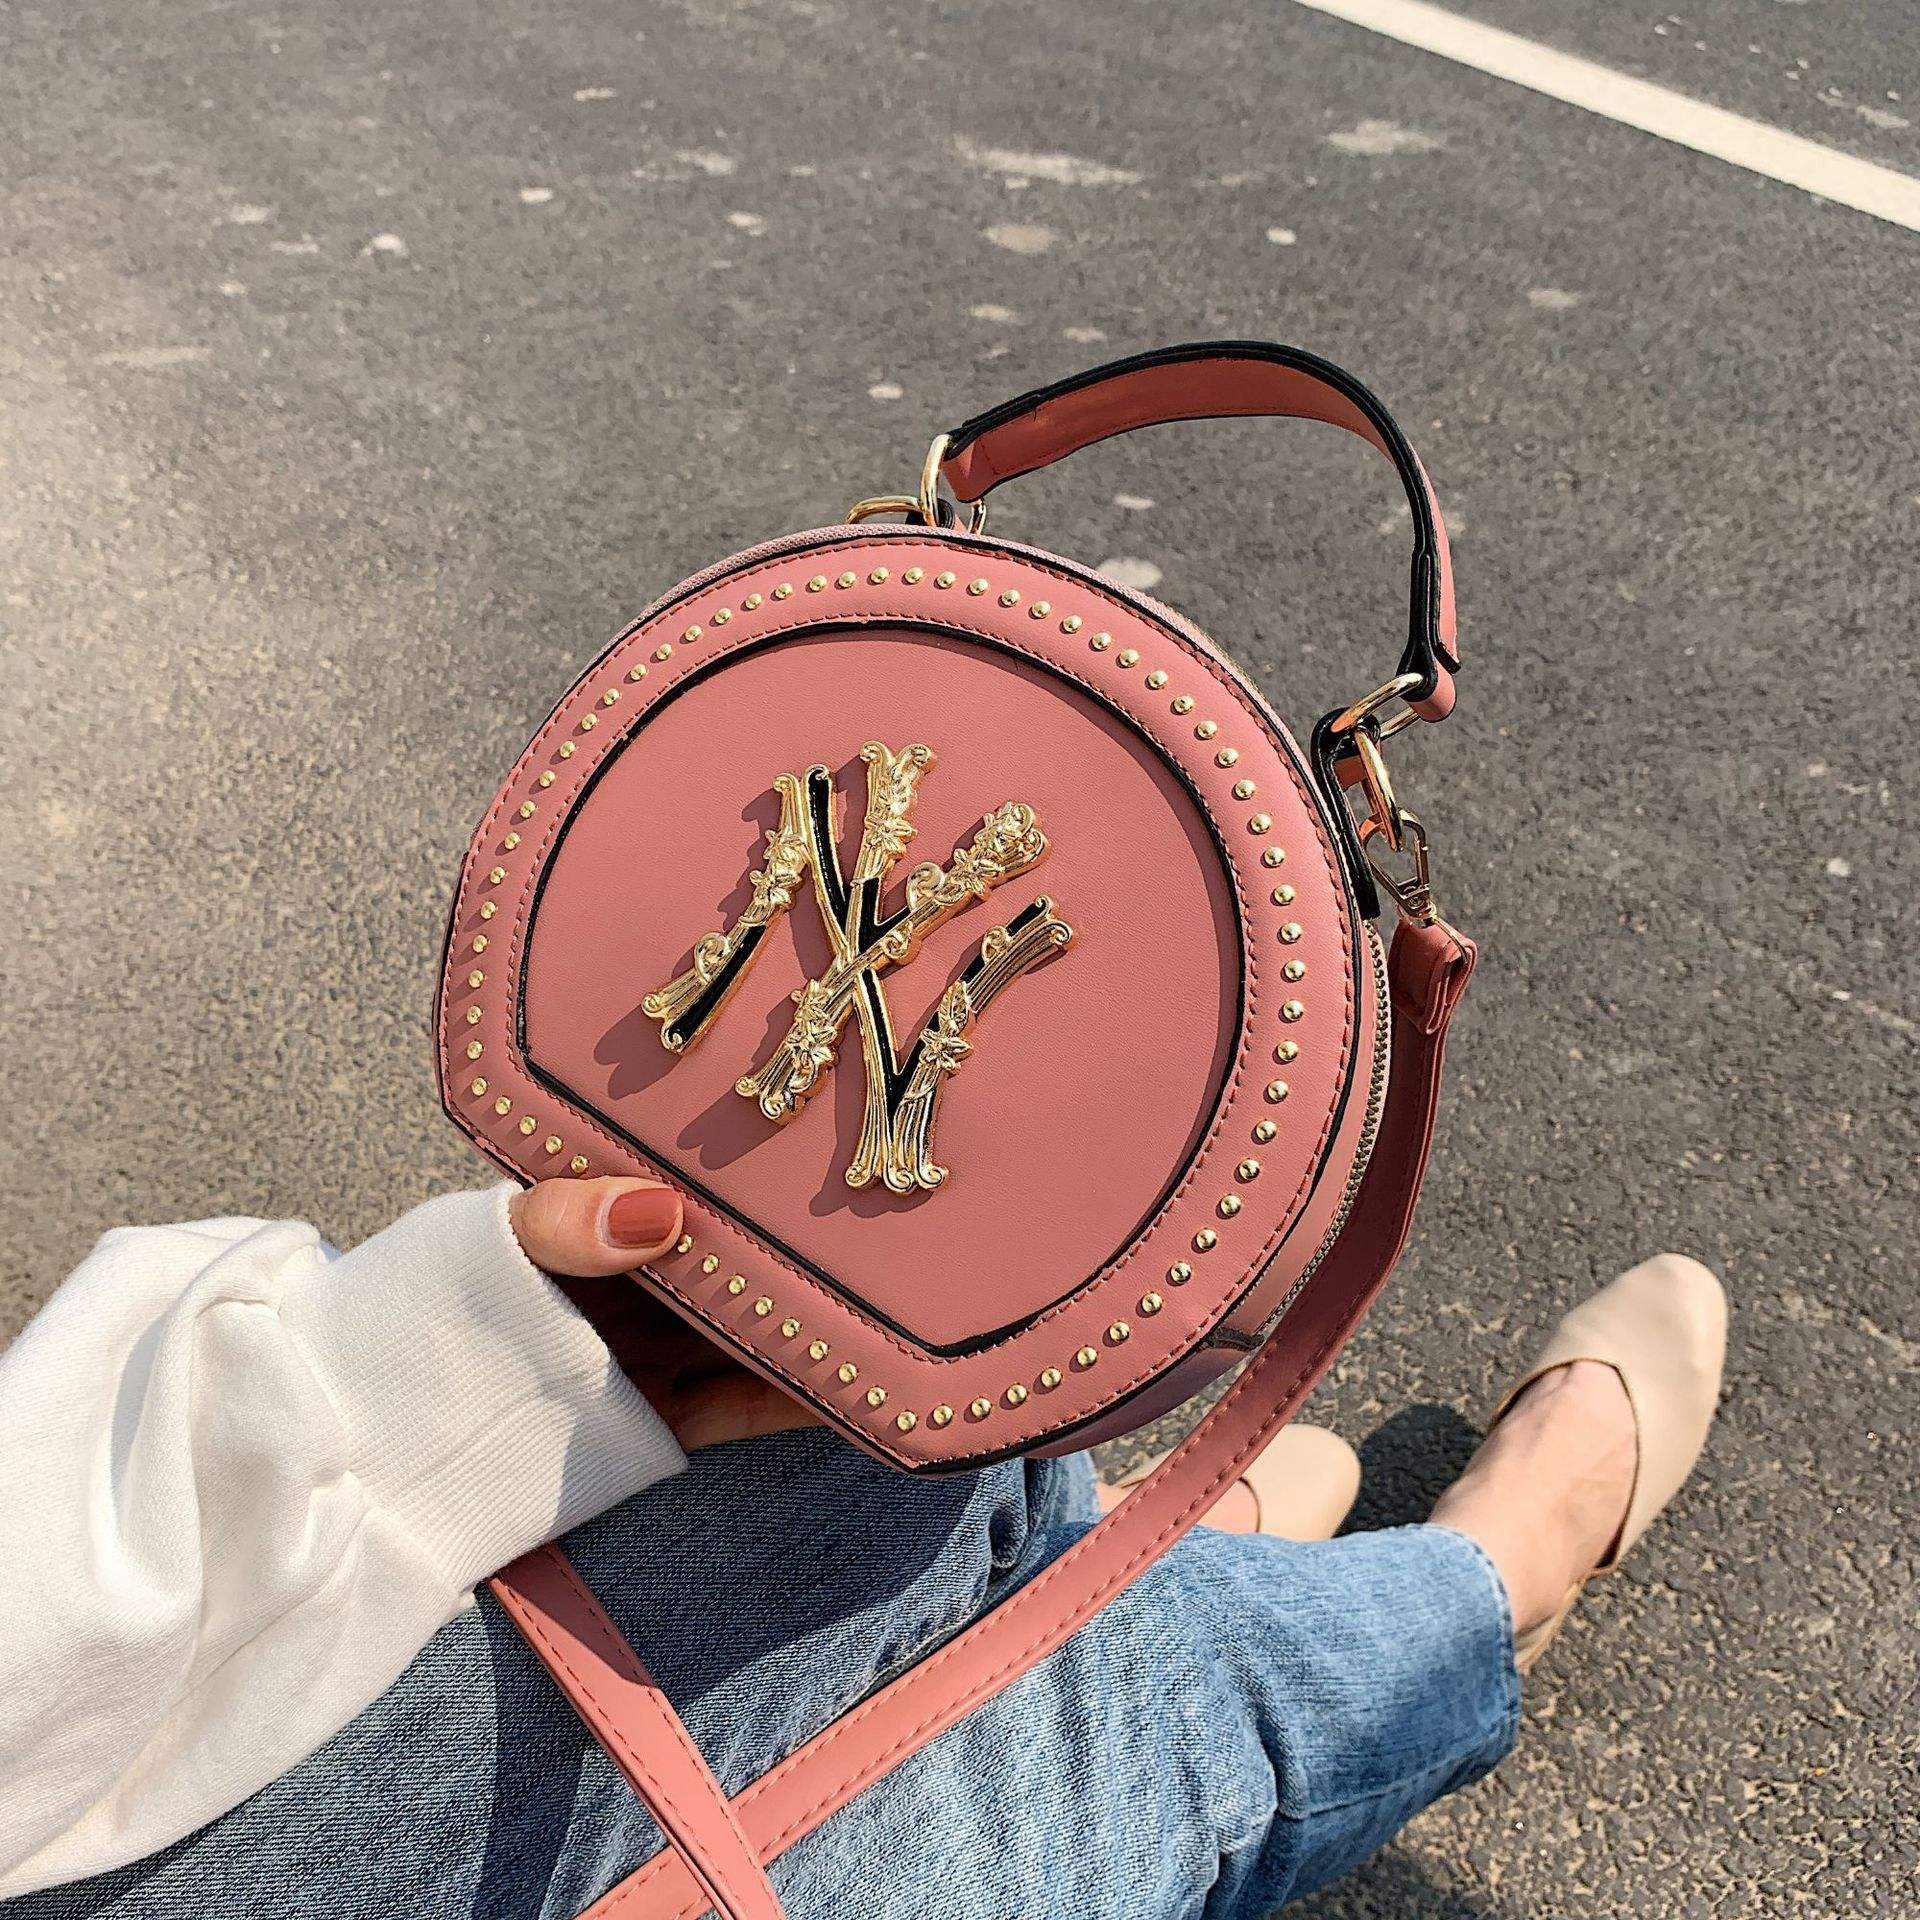 Sac A Main Fashion Luxury New Round Bag Designers Handbags Famous Brands NY purse handbags for women 2020